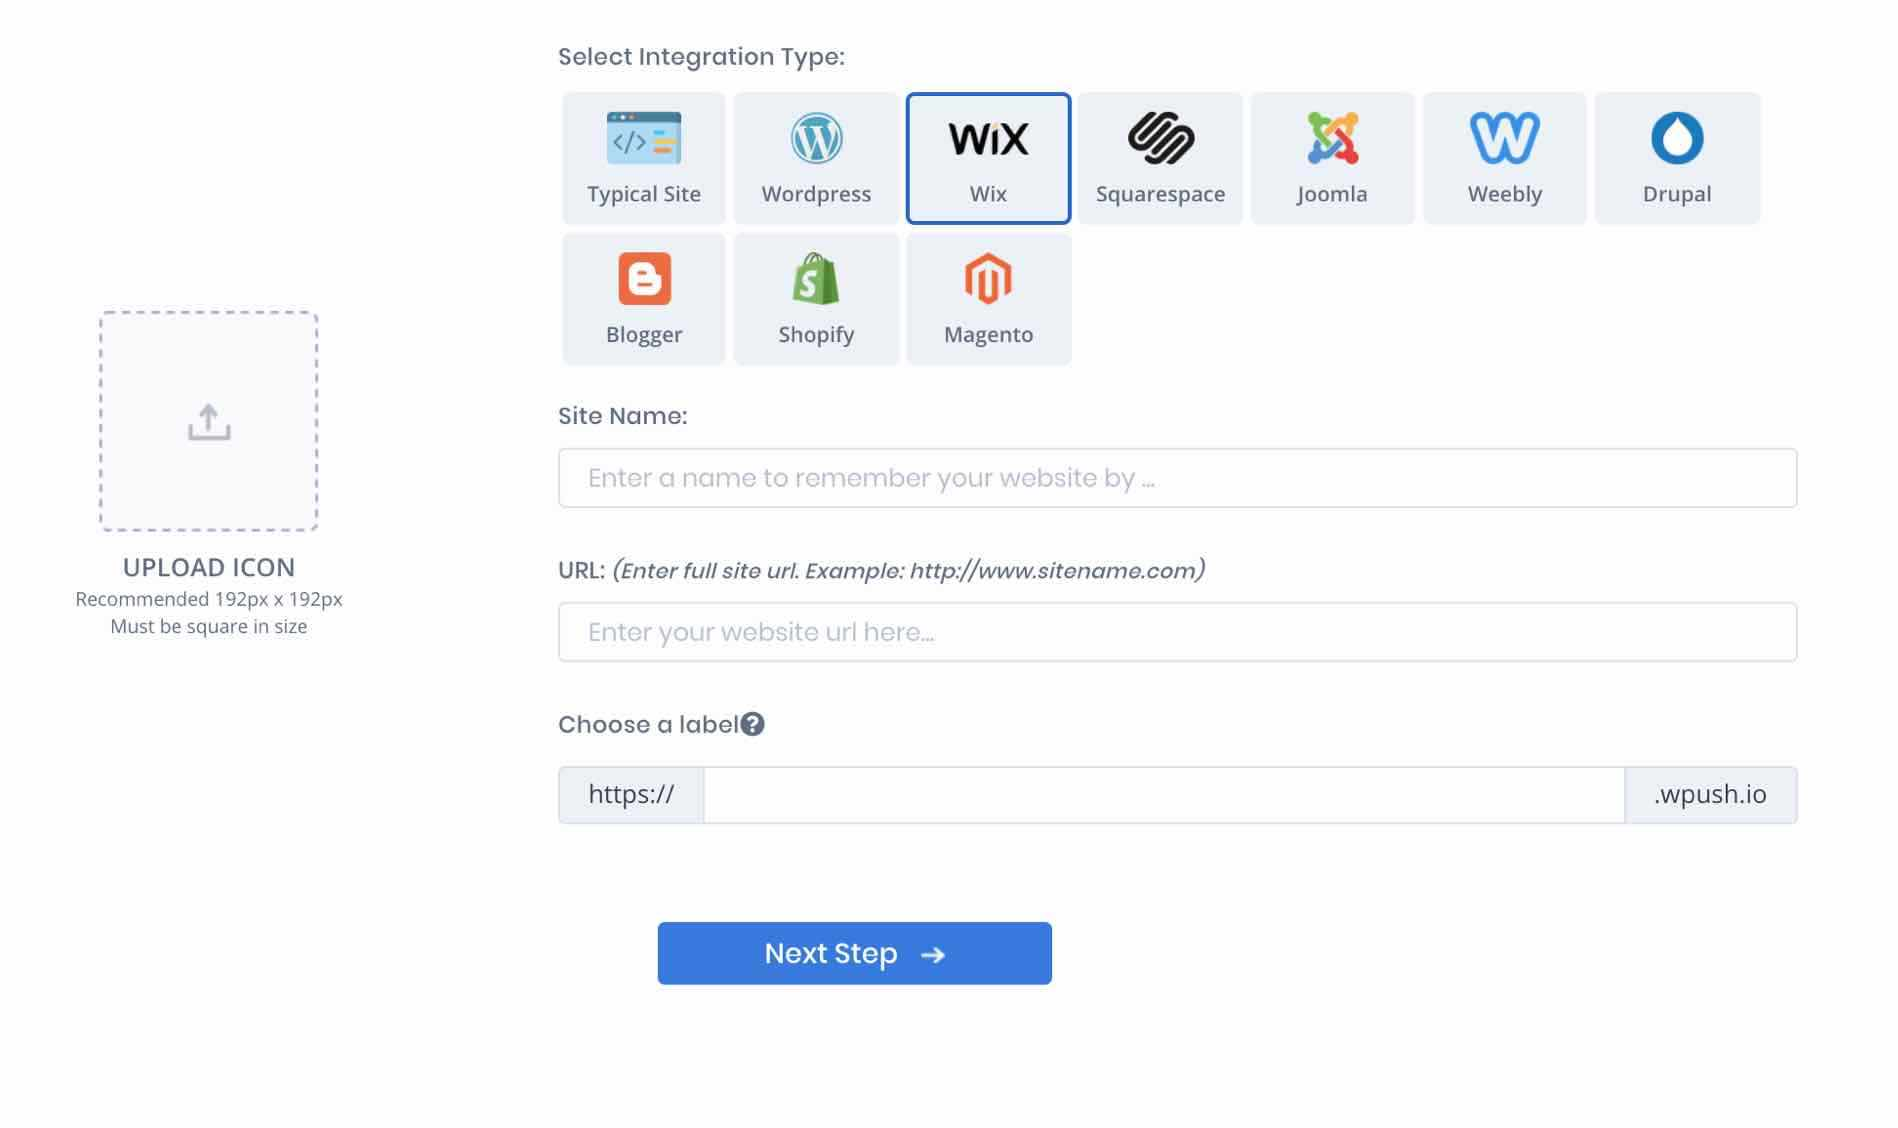 Webpushr Wix Integration